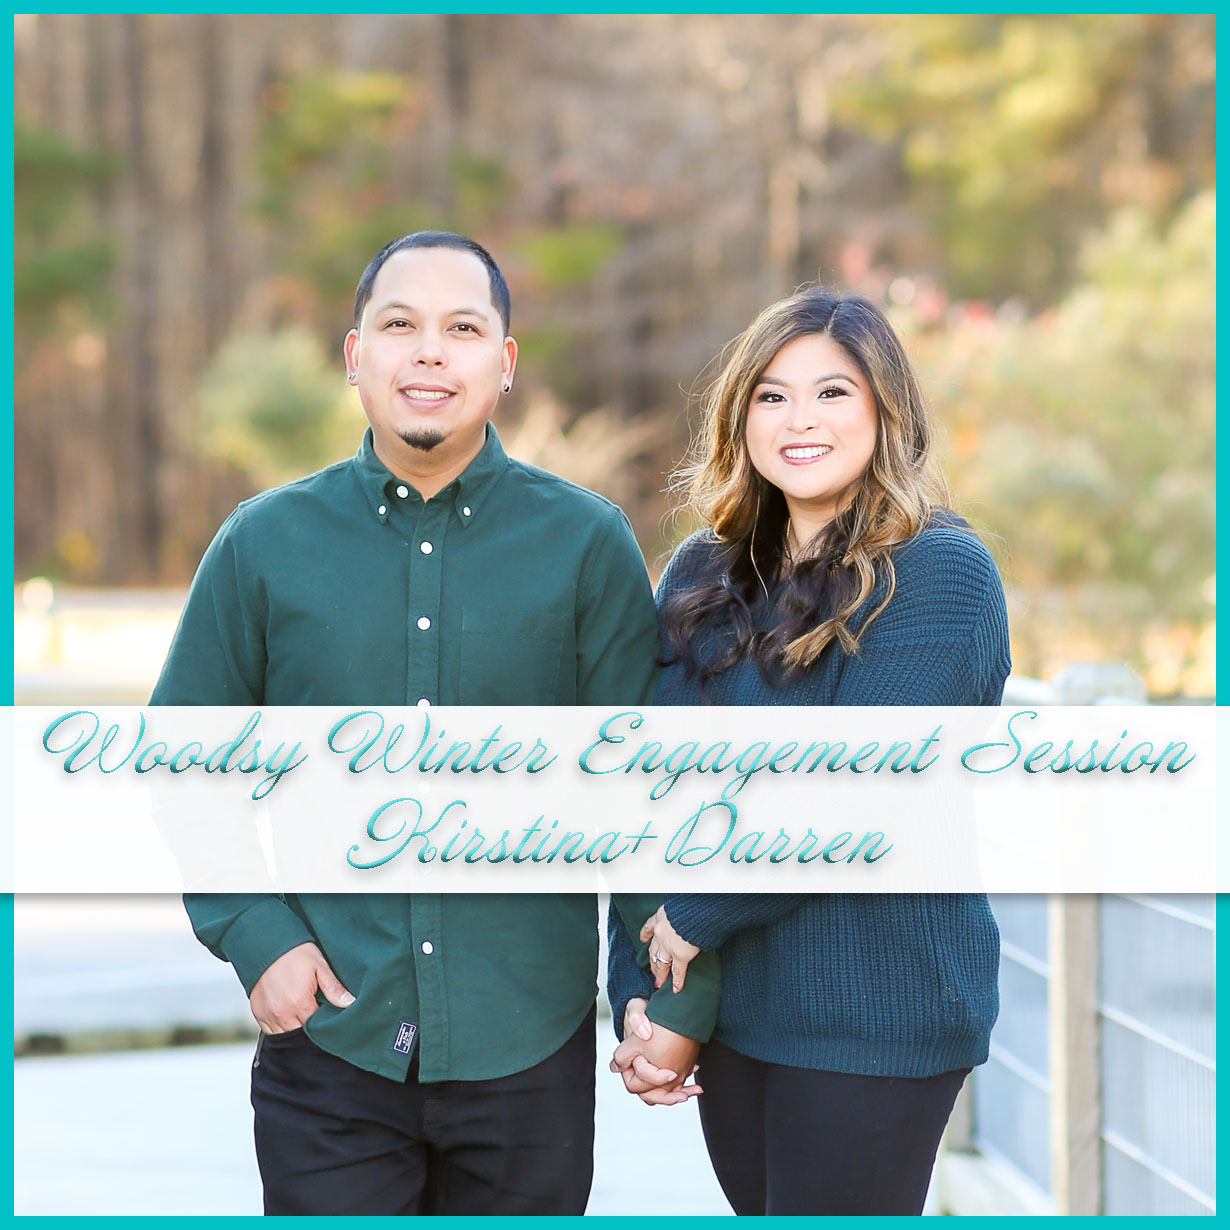 Woodsy Winter Engagement Session